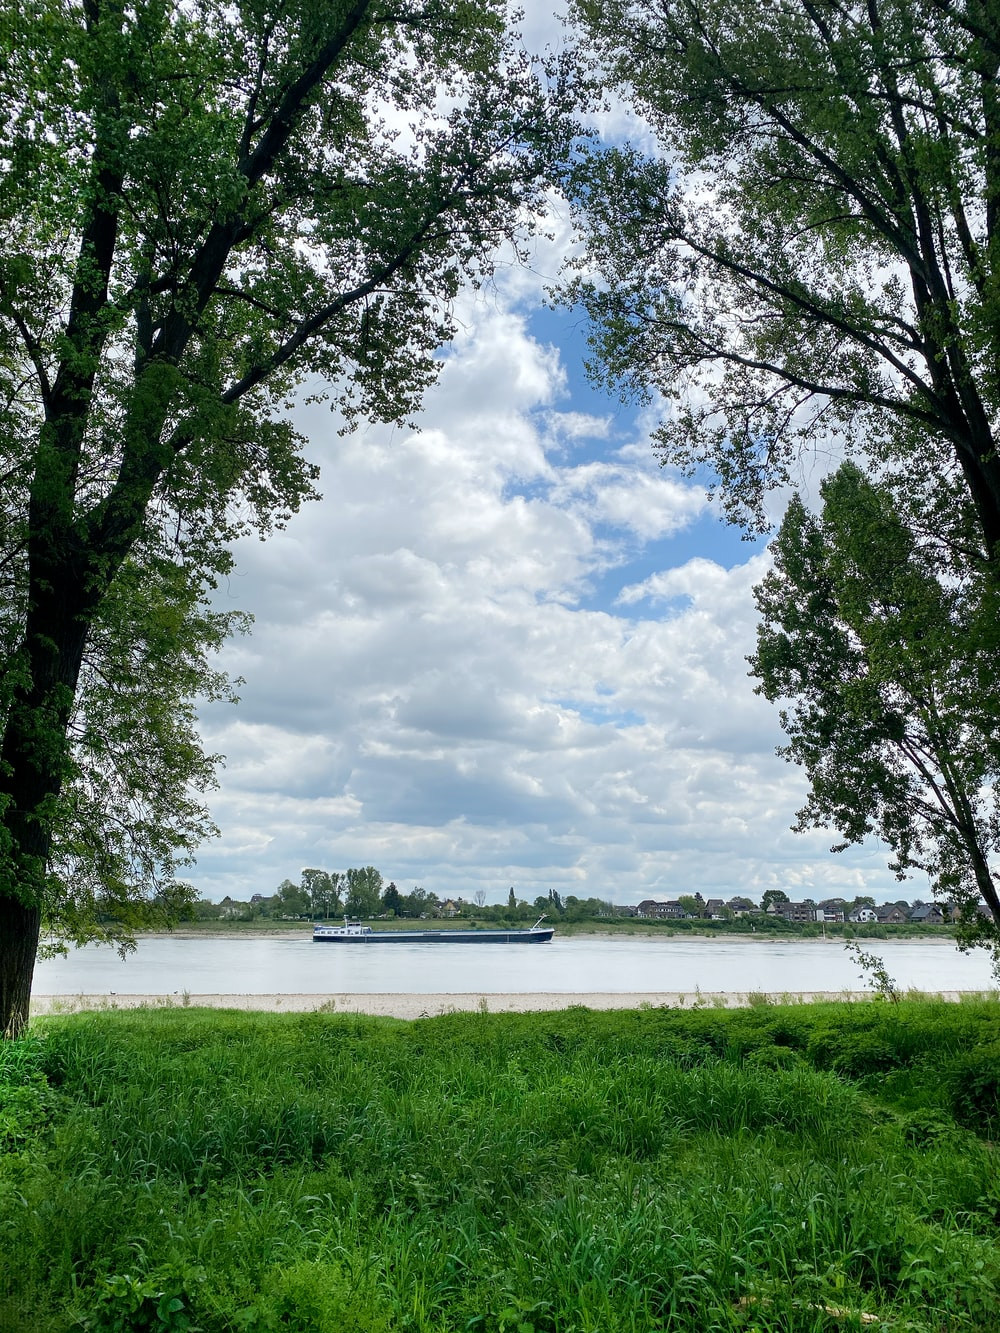 green trees near body of water under white clouds and blue sky during daytime